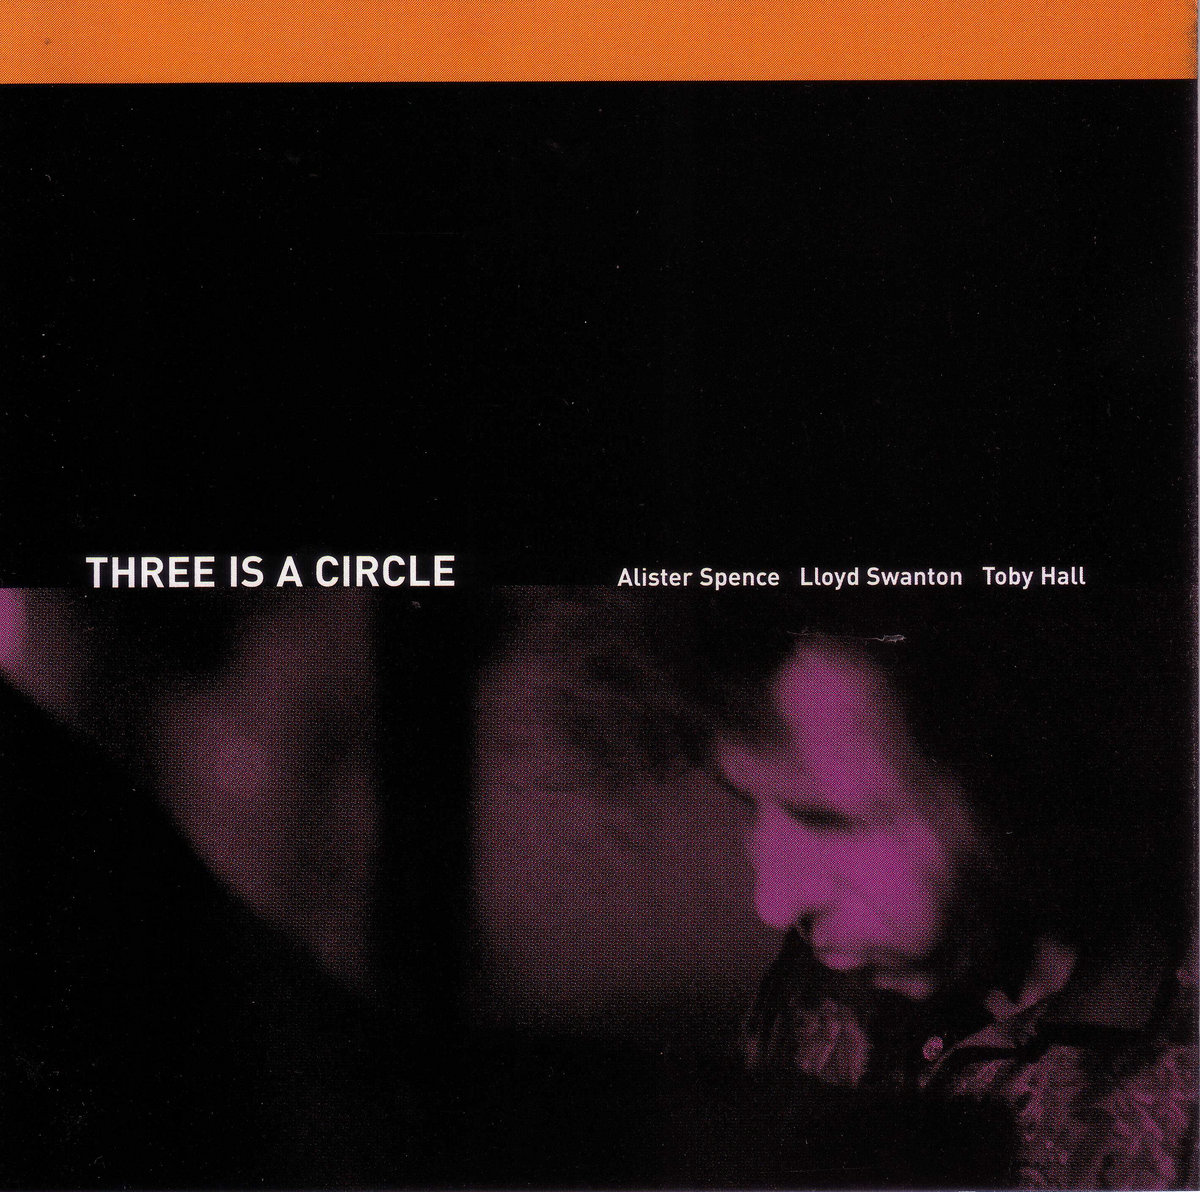 Three Is A Circle | Alister Spence Trio | Alister Spence